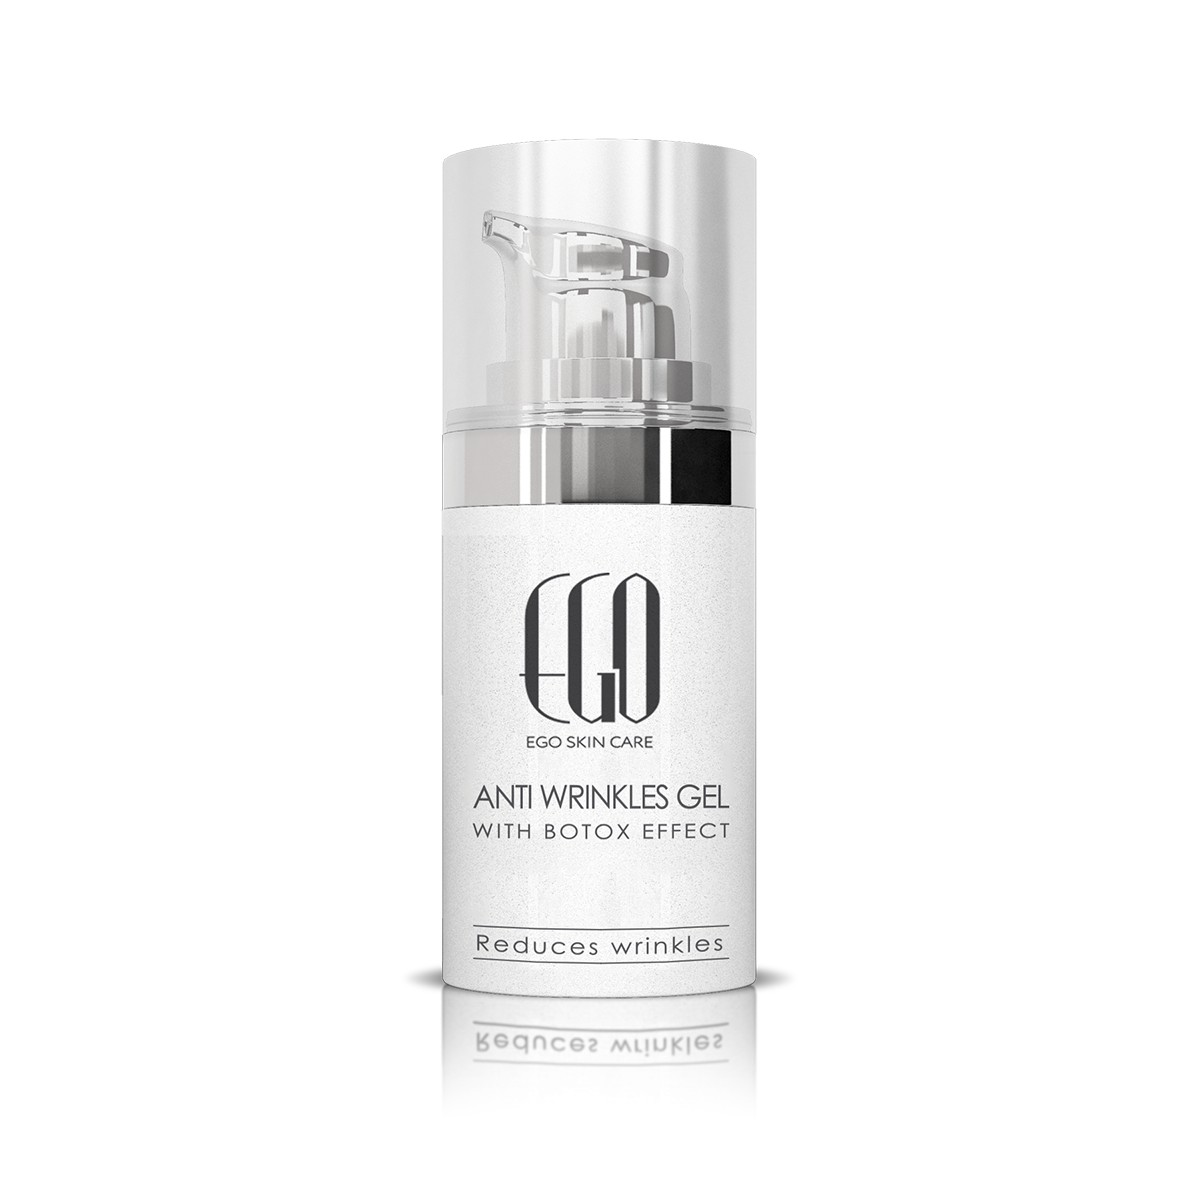 Anti-wrinkle face gel with botox effect EGO Skin Care Revive